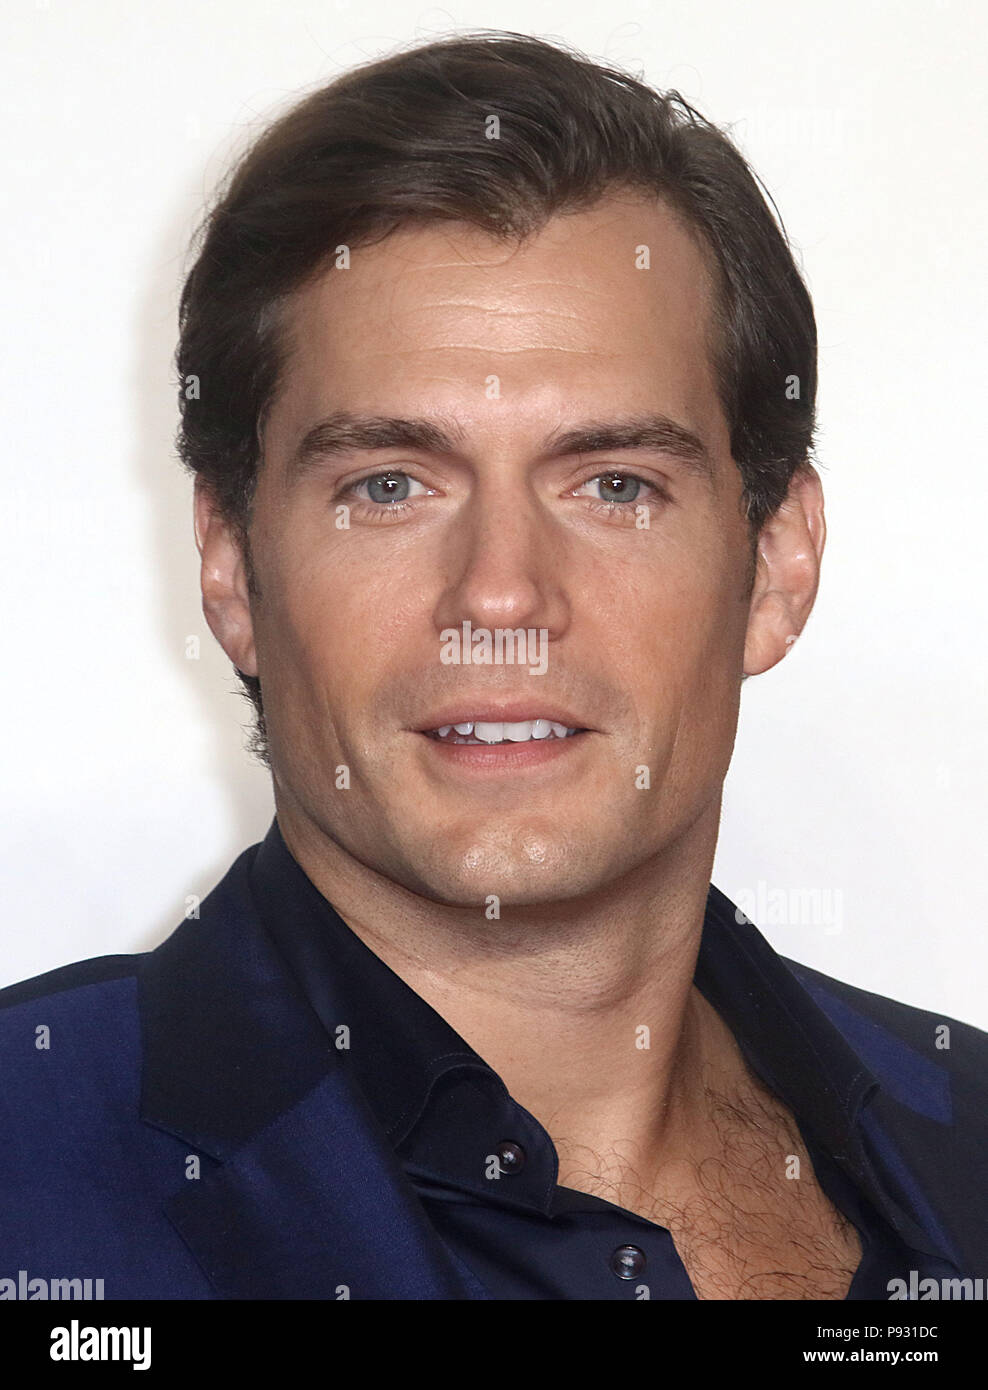 Jul 13, 2018  - Henry Cavill attending 'Mission Impossible - Fallout' UK Premiere at BFI IMAX in London, England, UK Stock Photo